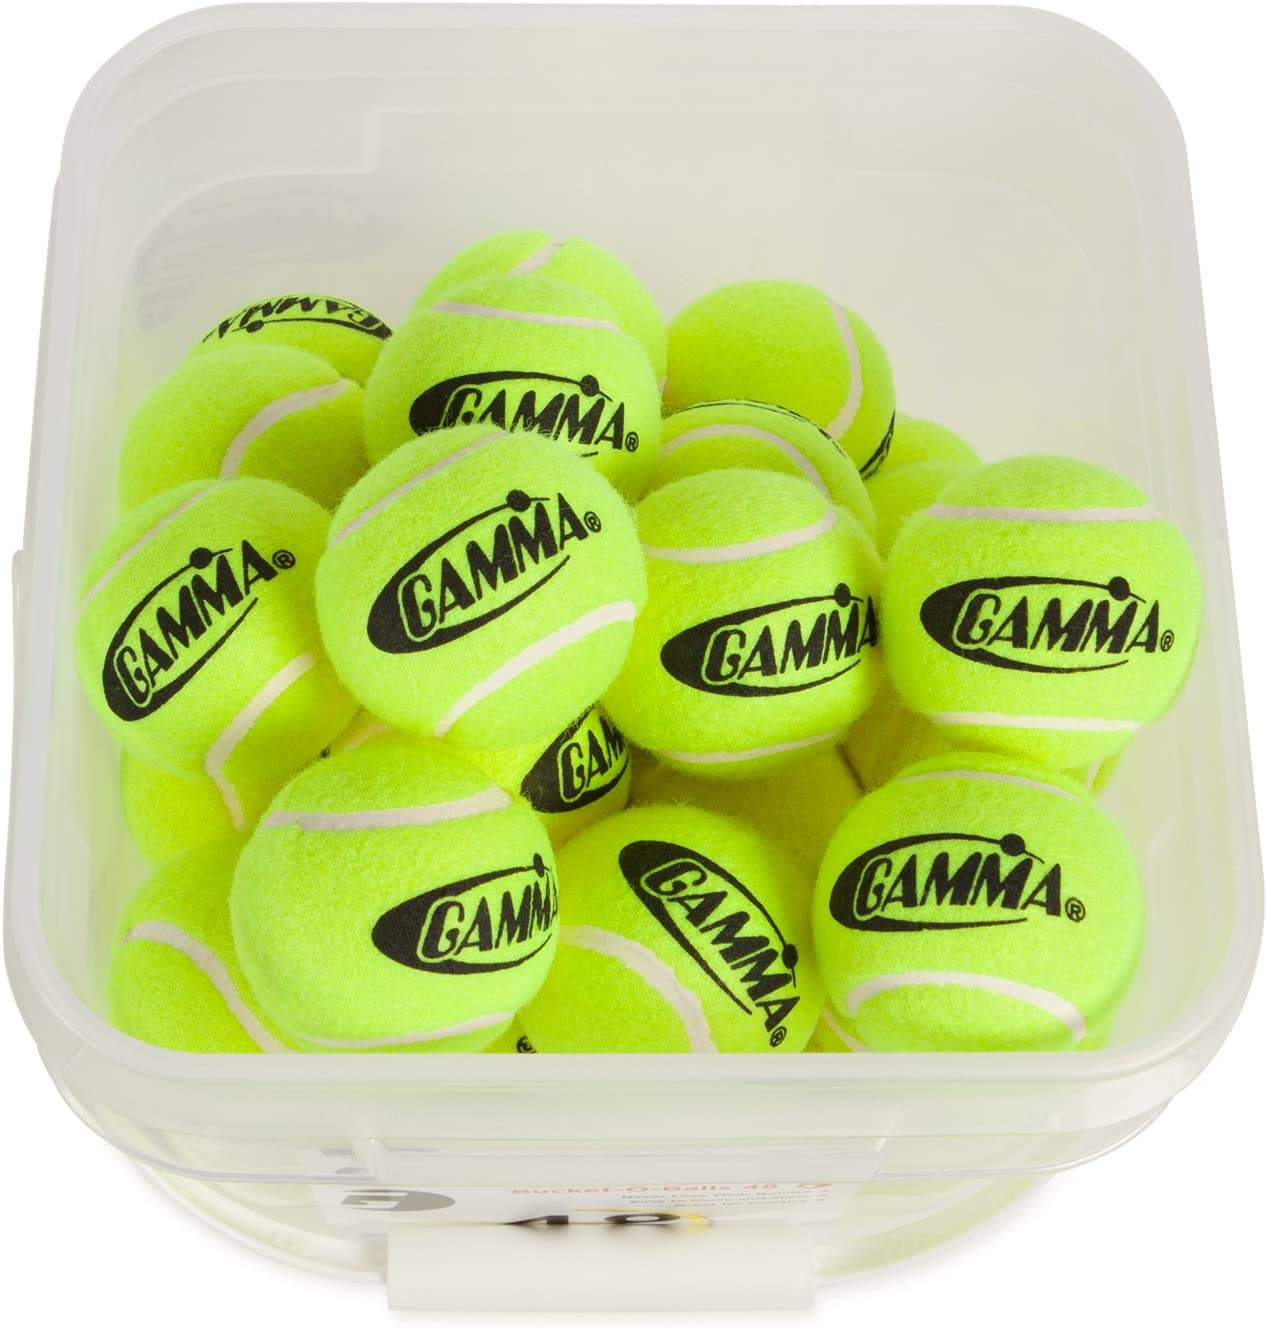 GAMMA Pressureless Tennis Ball Bucket| Case w/48 Practice Balls| Sturdy/Reusable/Portable Bucket to Replace Less Durable Tennis Mesh Bags| Ideal For All Court Types| Gamma Premium Tennis Accessories : Tennis Balls : Sports & Outdoors